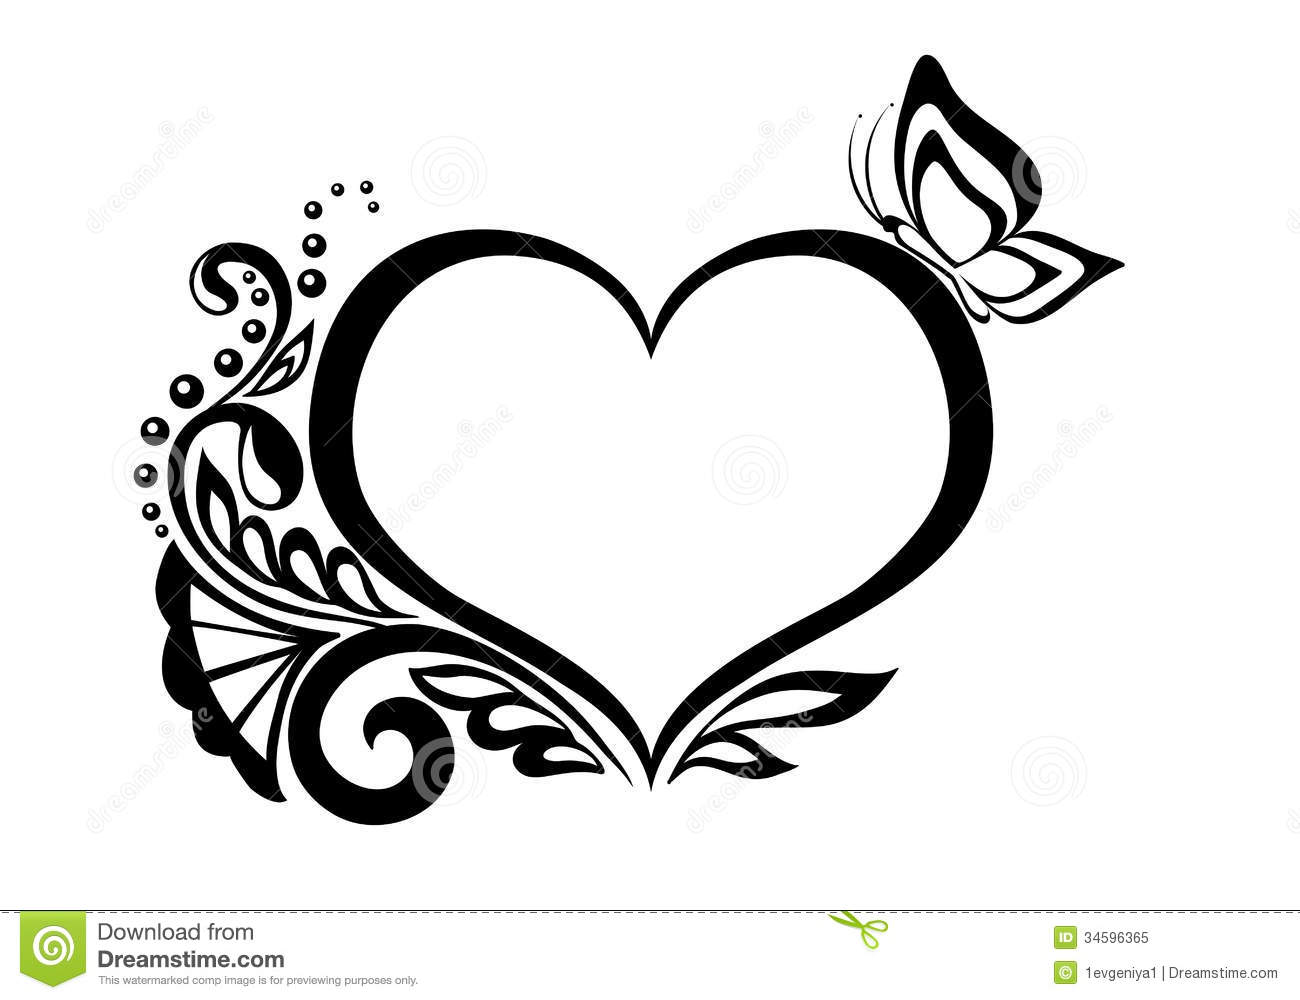 Black-and-white Symbol Of A Heart With Floral Desi Royalty ...